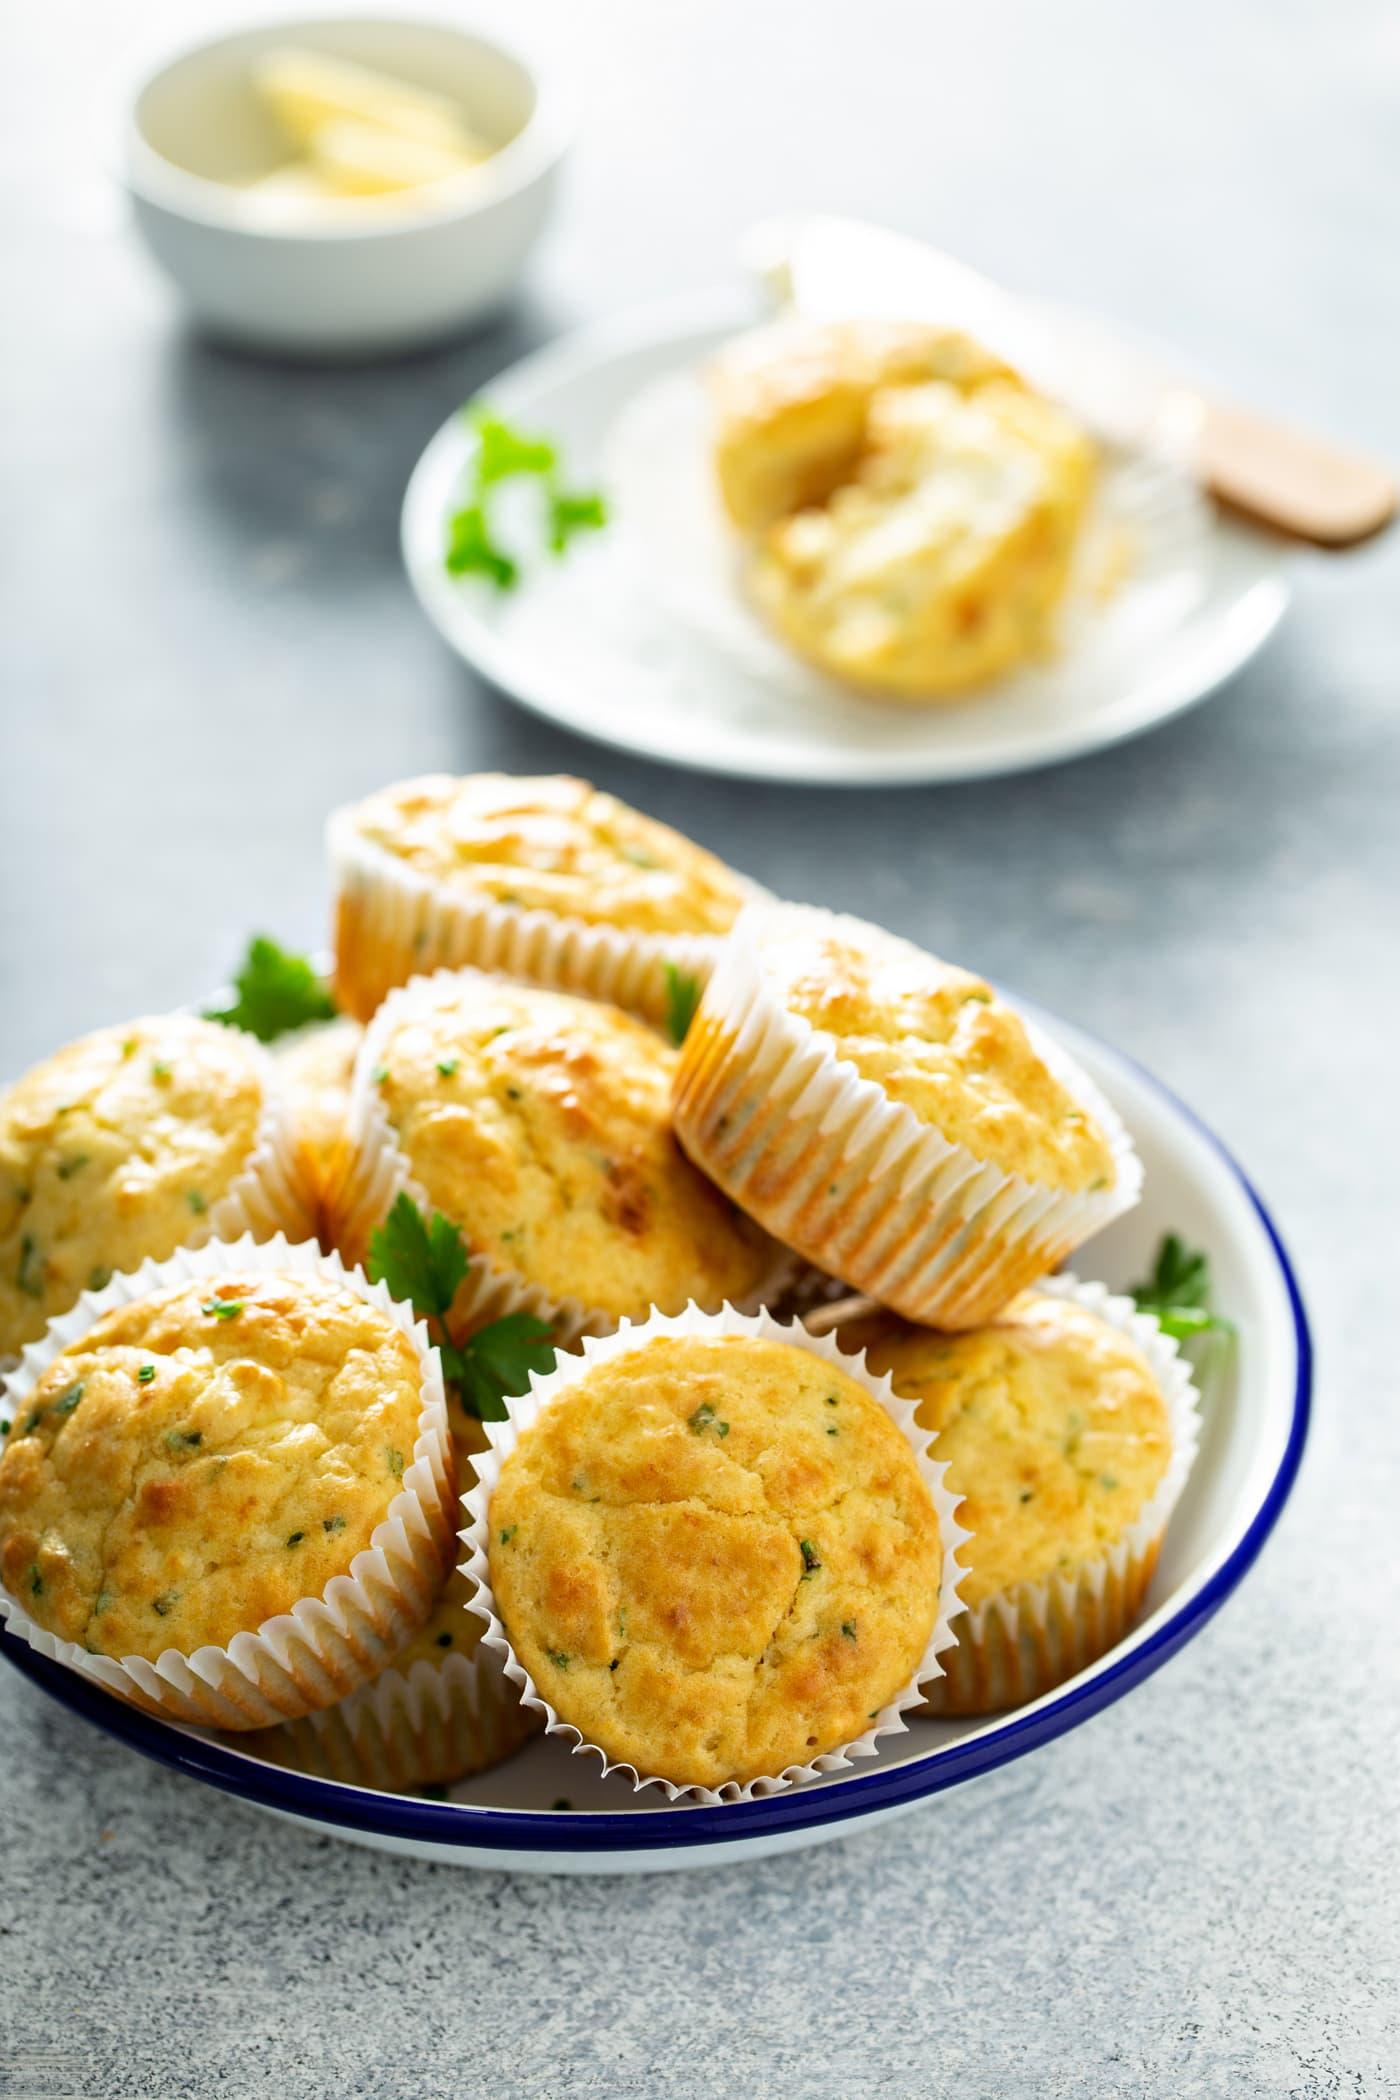 A serving bowl of feta muffins stacked on top of each other. There is a plate with a muffin that is broken in half in the background.